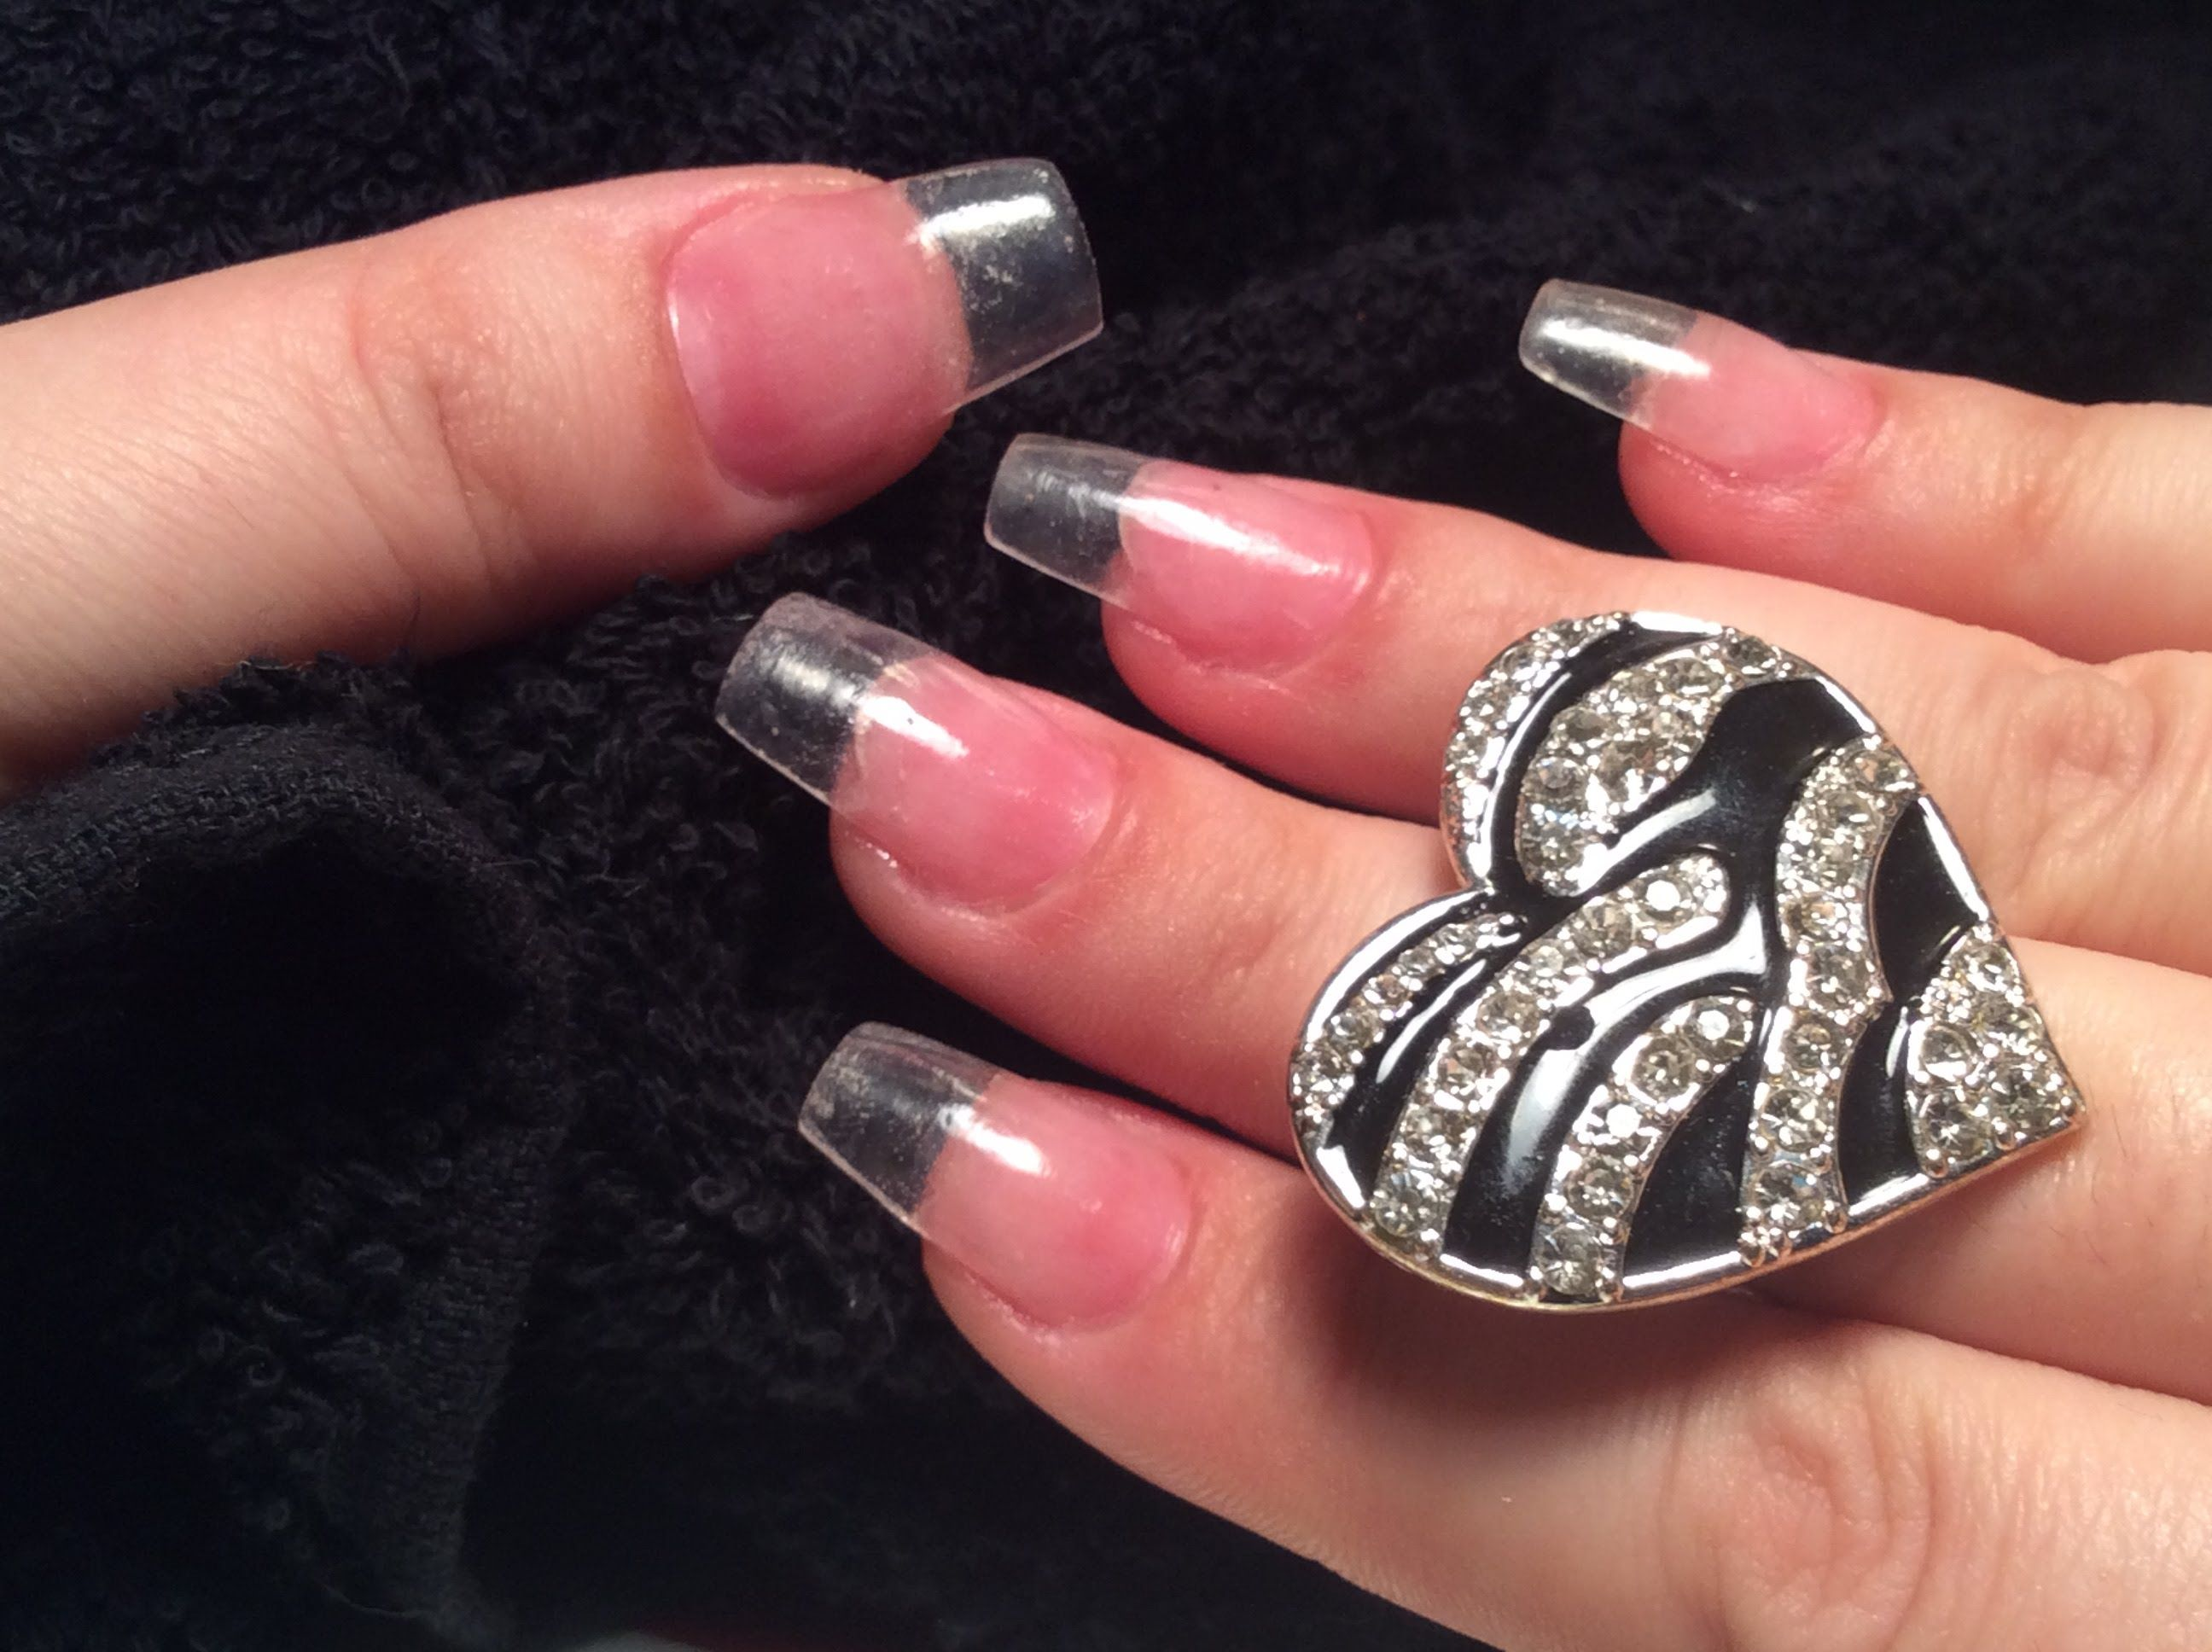 How To Do Clear Acrylic Nails At Home Clear Acrylic Nails Acrylic Nails At Home Acrylic Nails